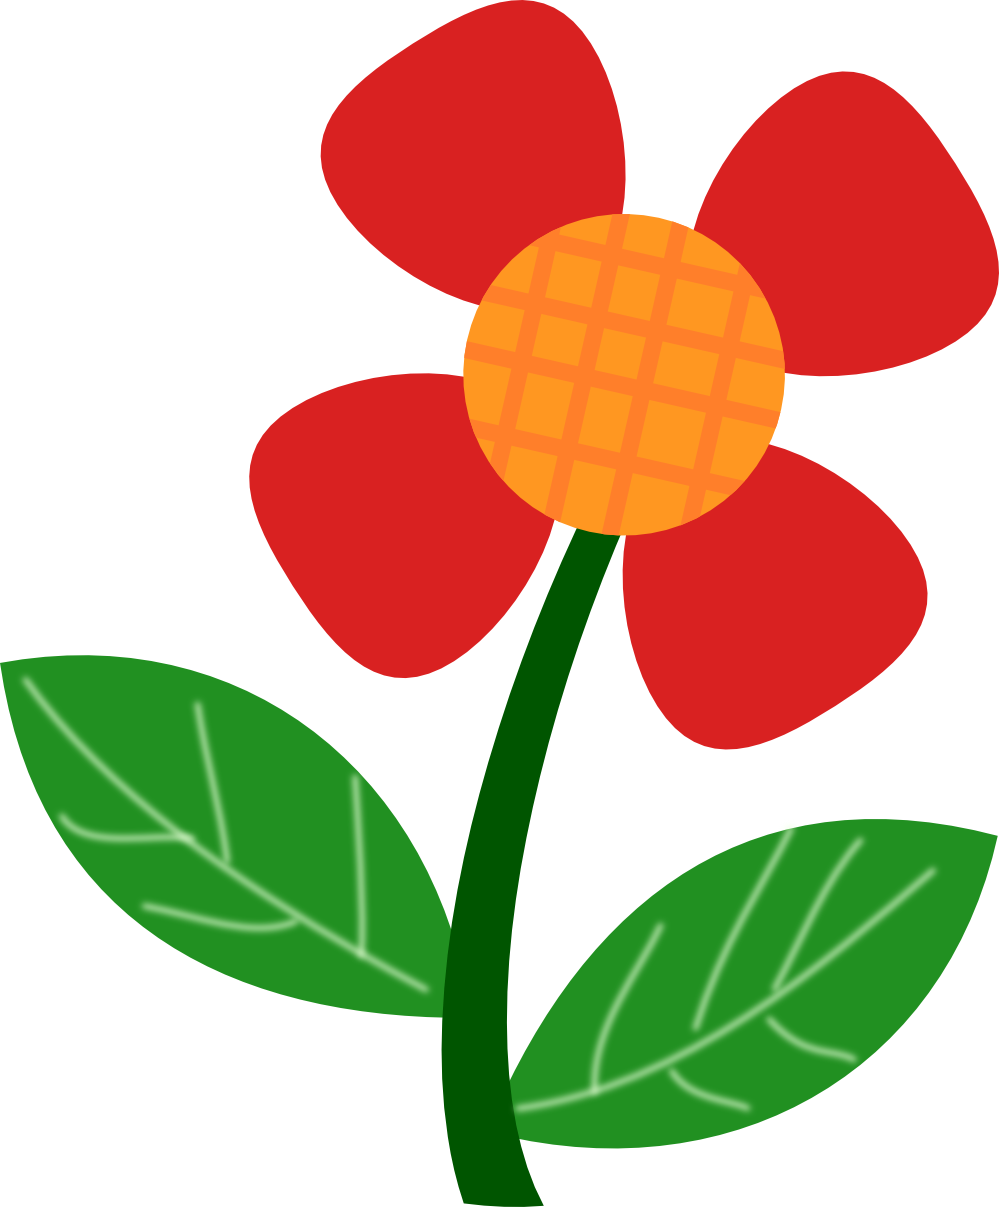 Red Flower clipart  Wallpapers Free HD Art